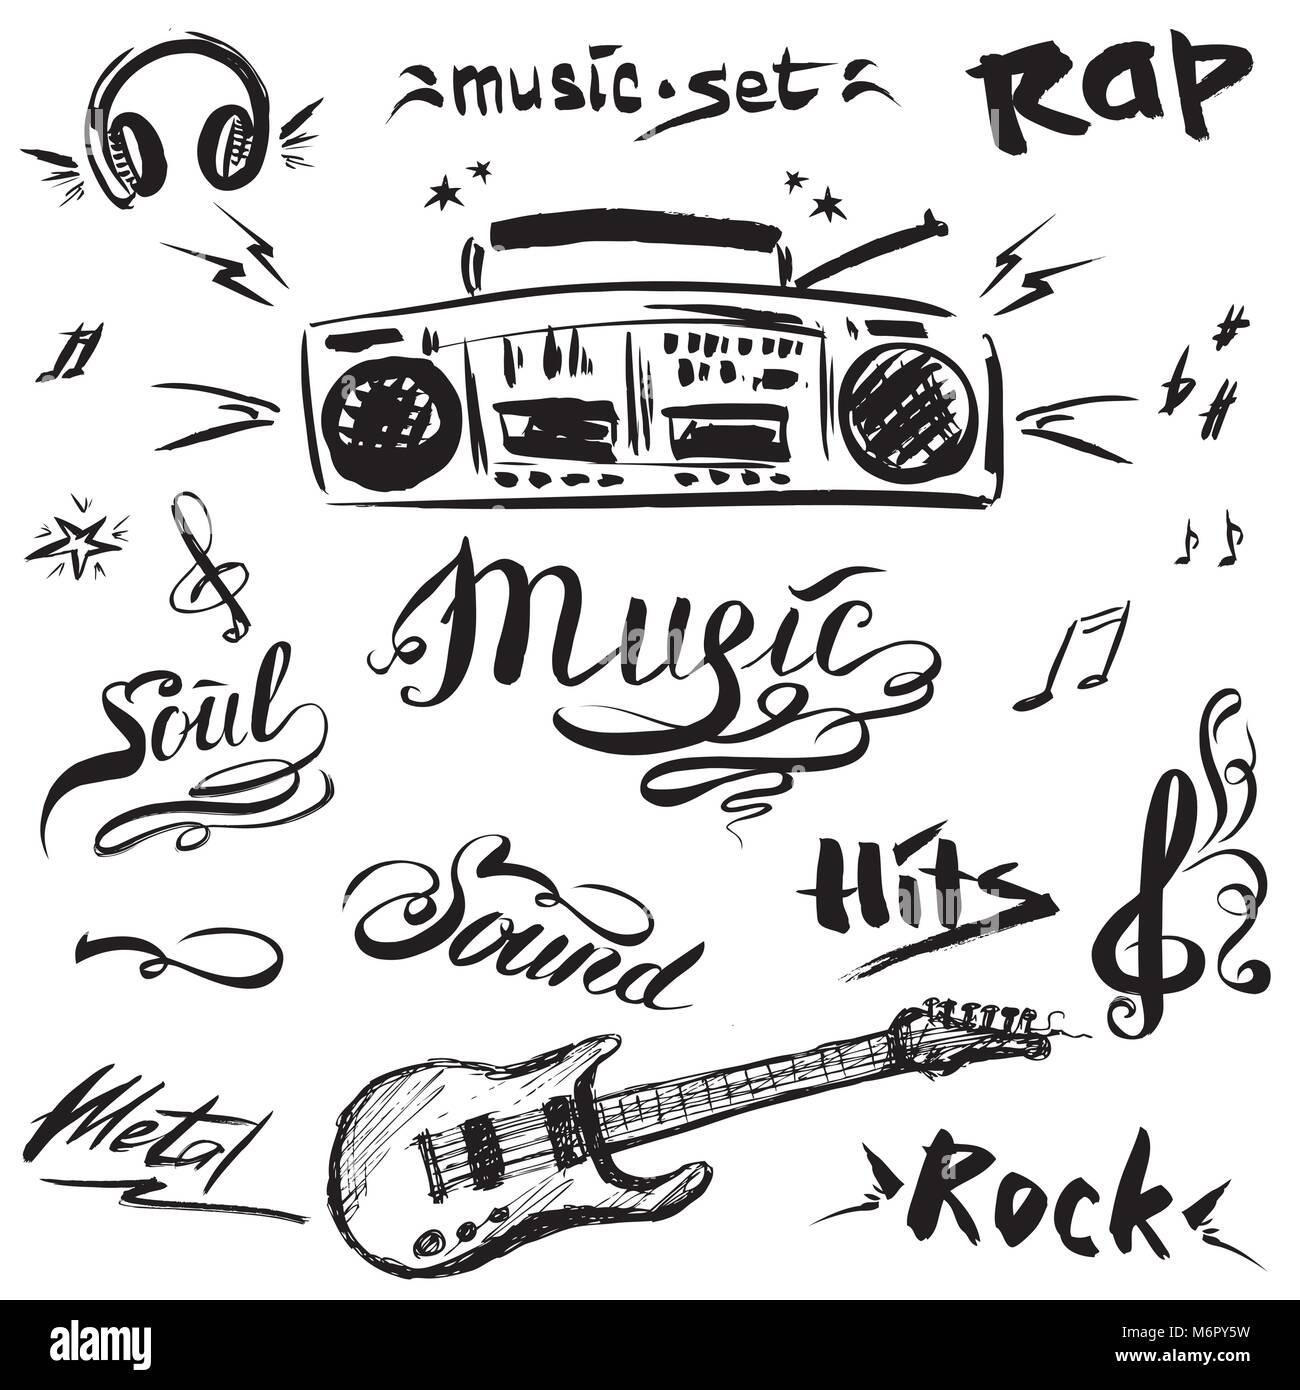 00a10ebefa Hand drawn sketch with notes, music player,guitar and music styles  lettering signs, vector illustration